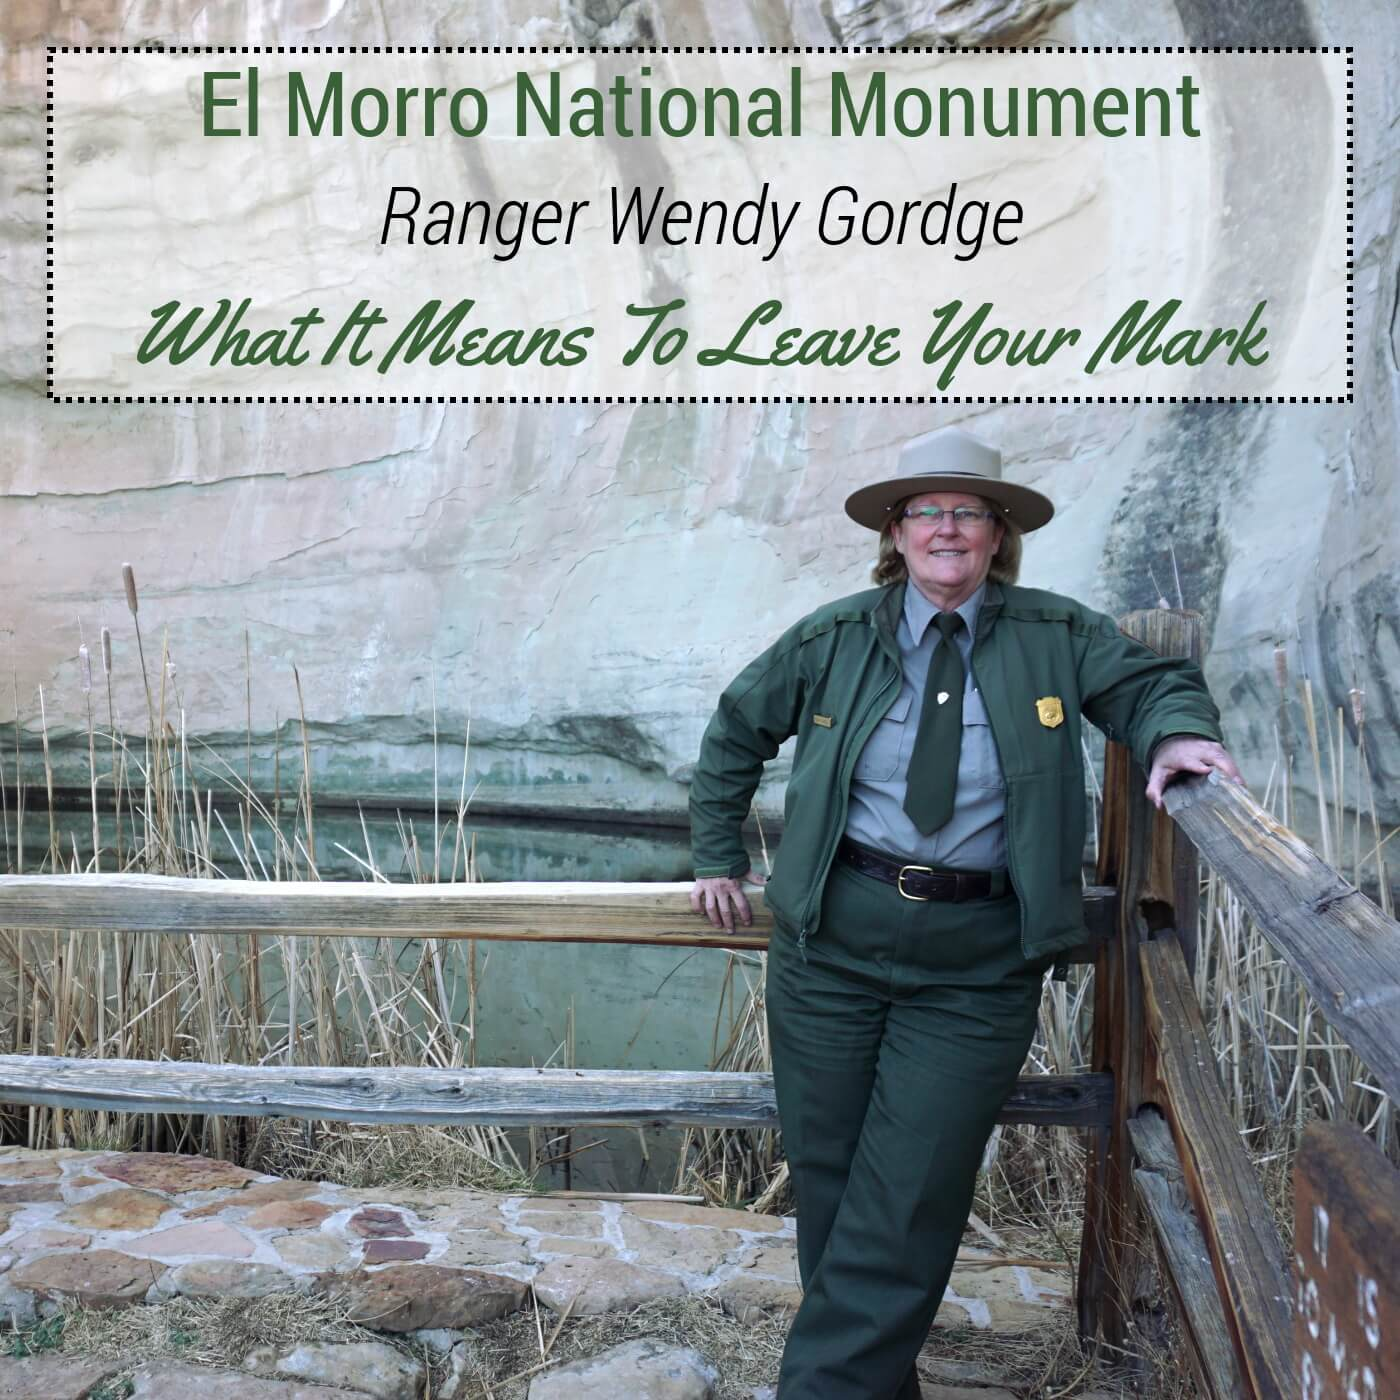 El Morro National Monument - Ranger Wendy Gordge - What it means to leave your mark